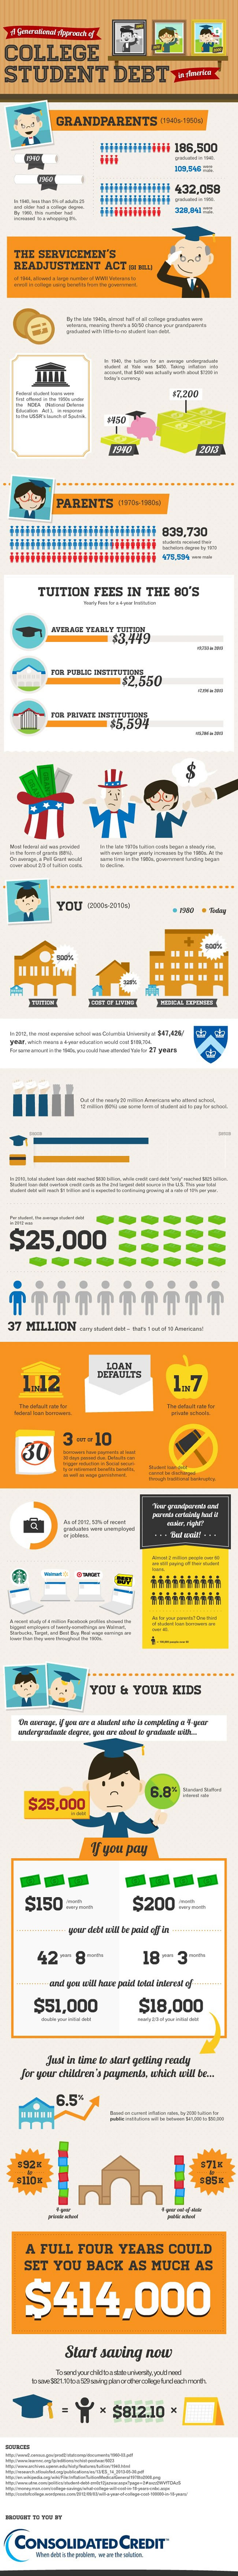 Generational Student Debt in America #Infographic | www.TheHeavyPurse.com